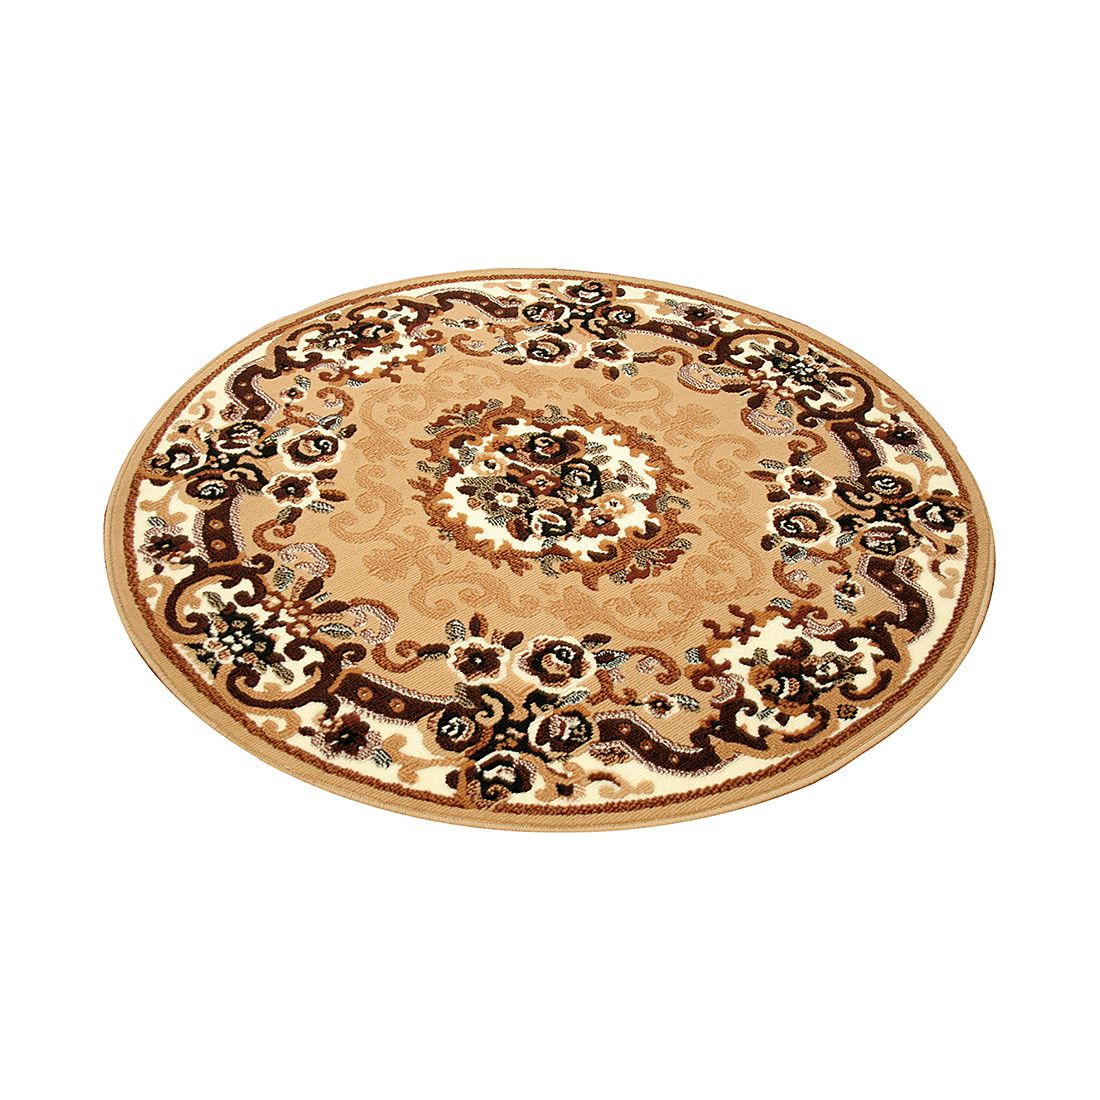 tapis rond 200 cm diametre tapis rond soft taupe 200 cm. Black Bedroom Furniture Sets. Home Design Ideas